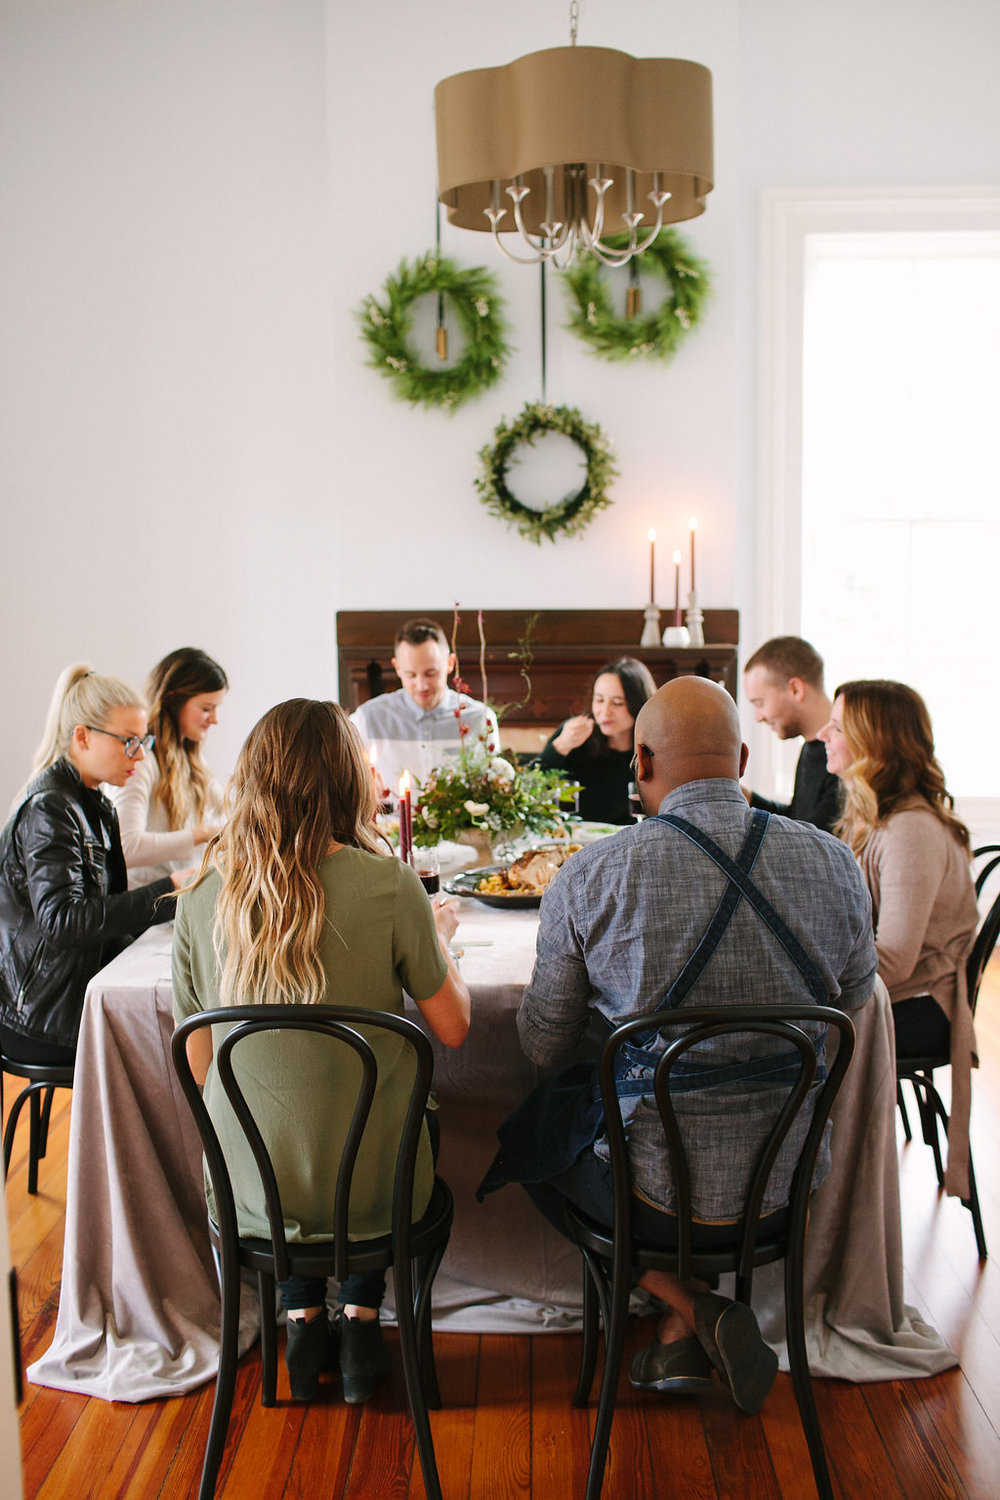 12th-Table-WEDDING-RENTALS-NASHVILLE-Design-Tips-Hosting-ENTERTAINING-Series-Christmas-Cocktails-and-Canapes-163.jpg